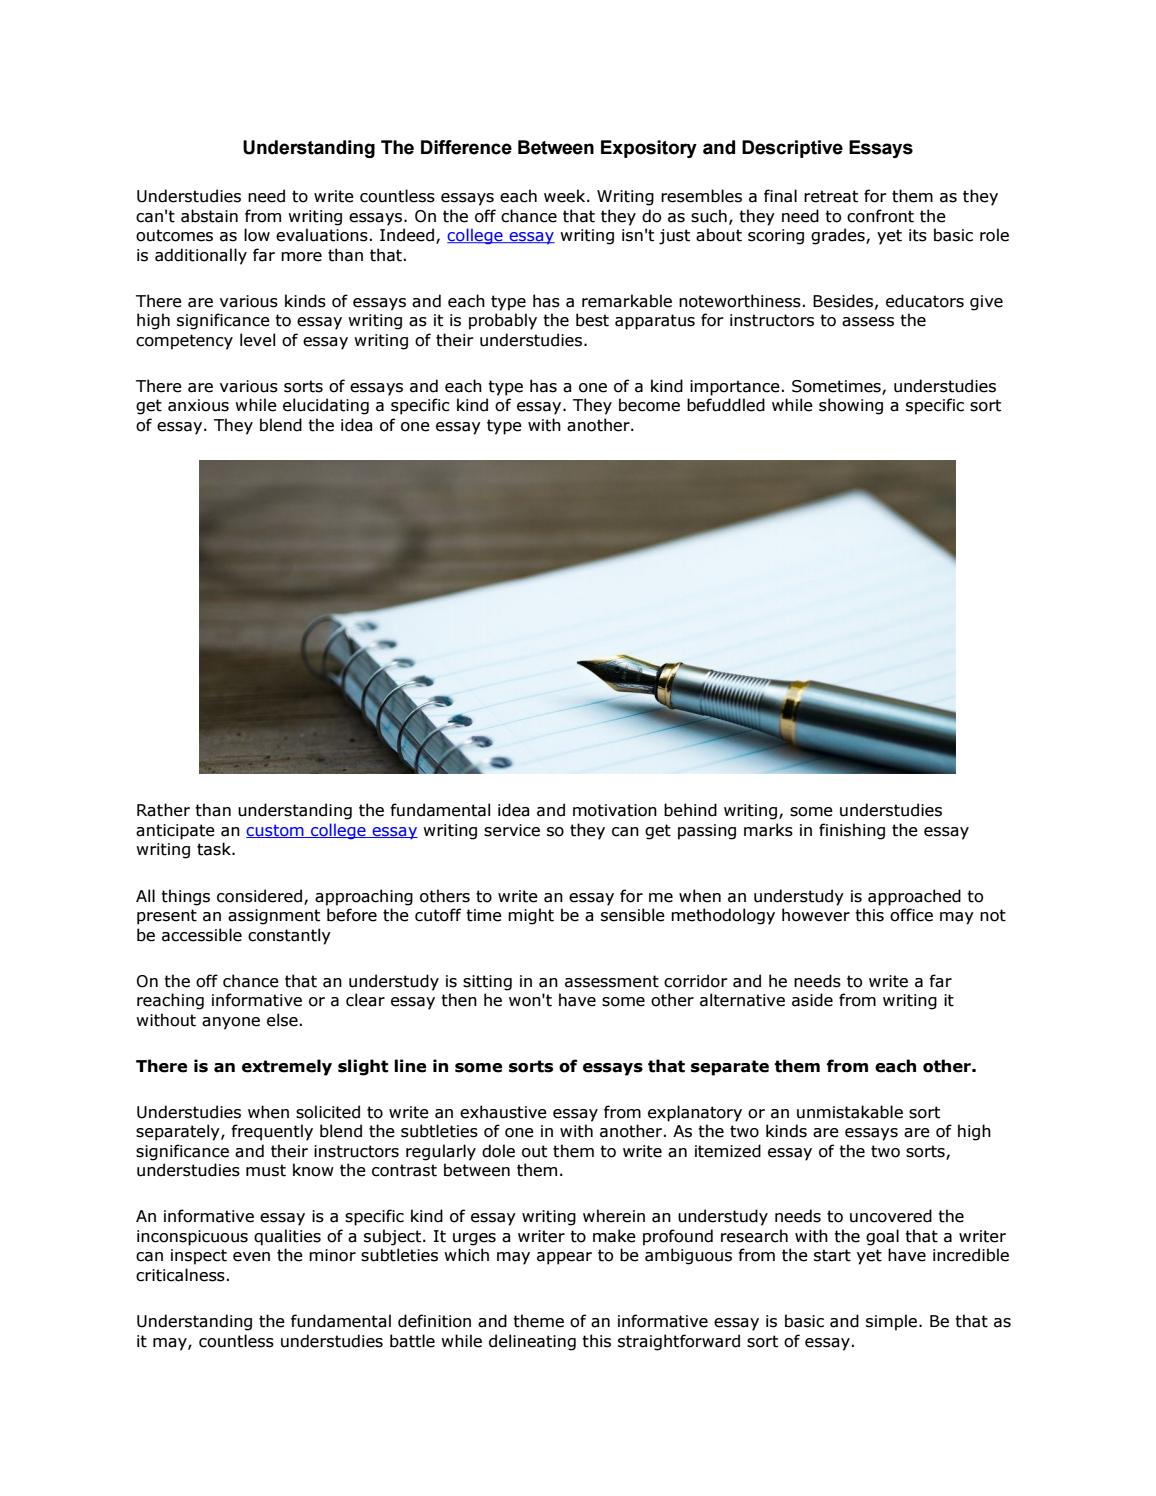 Custom definition essay writing service for college proposal consultant resume